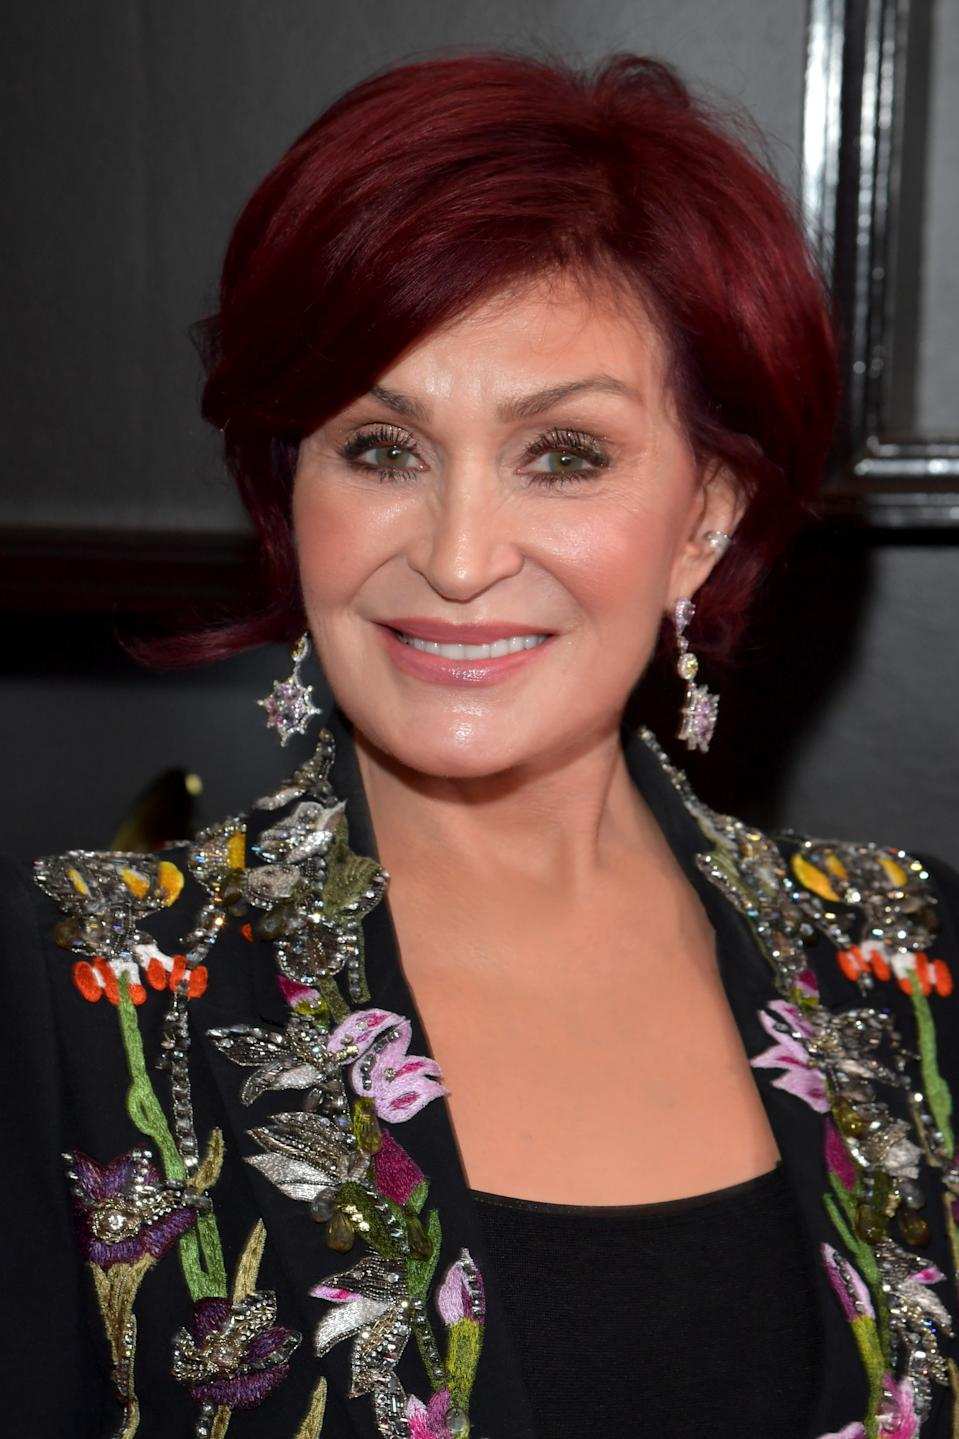 Sharon Osbourne attends the 62nd Annual GRAMMY Awards at STAPLES Center on January 26, 2020 in Los Angeles, California. (Photo by Lester Cohen/Getty Images for The Recording Academy)